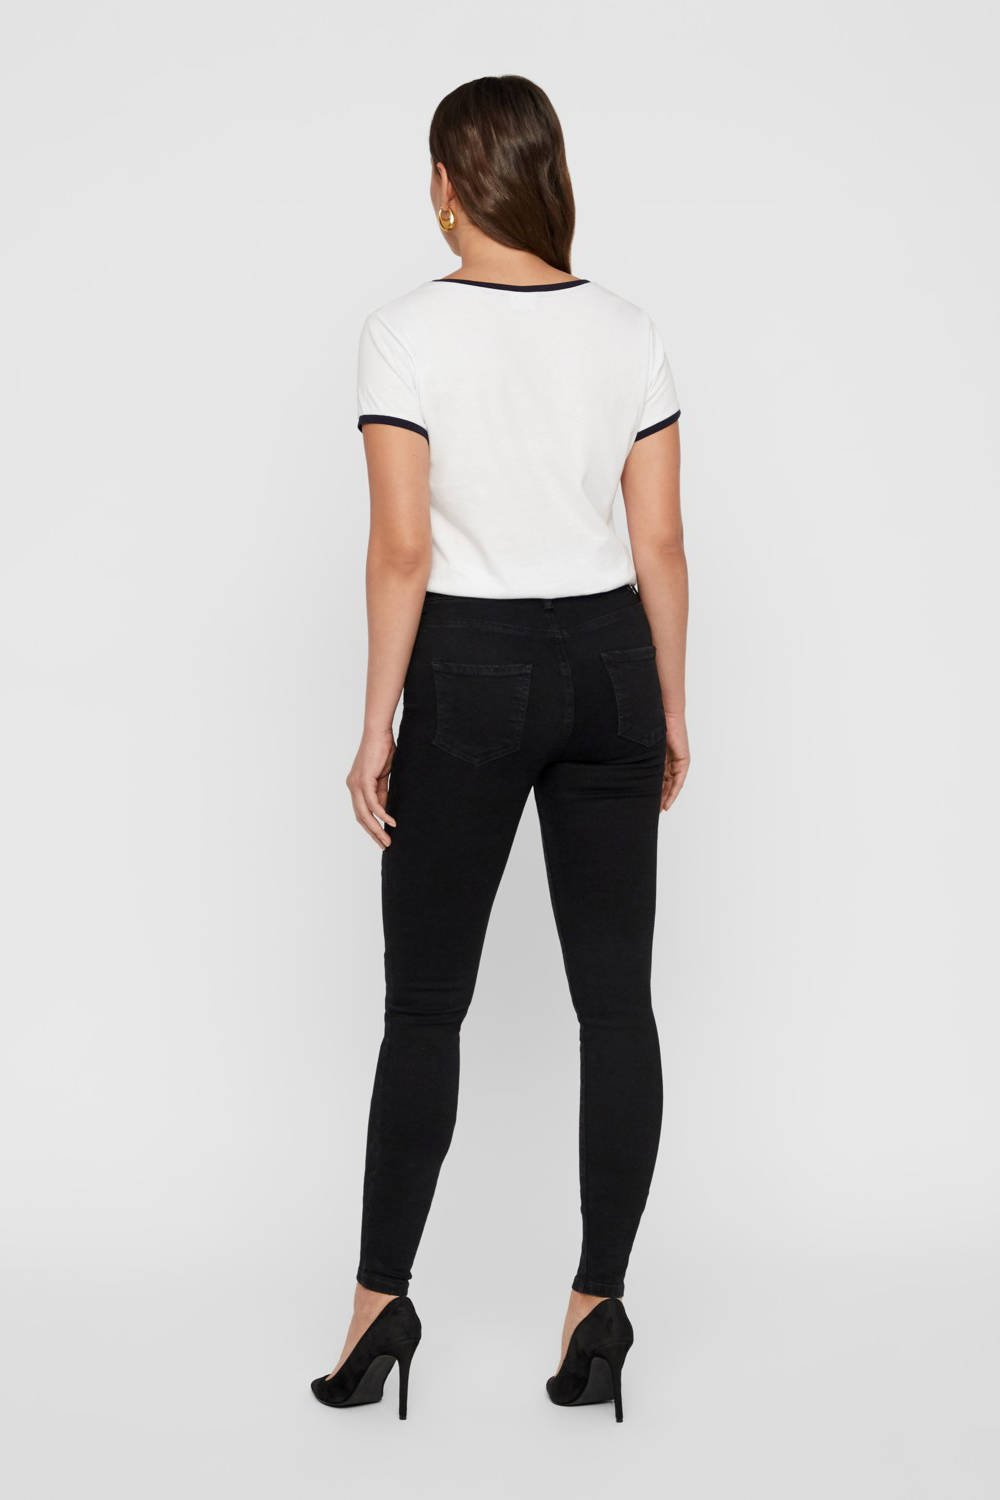 NOISY MAY high waist skinny jeans zwart